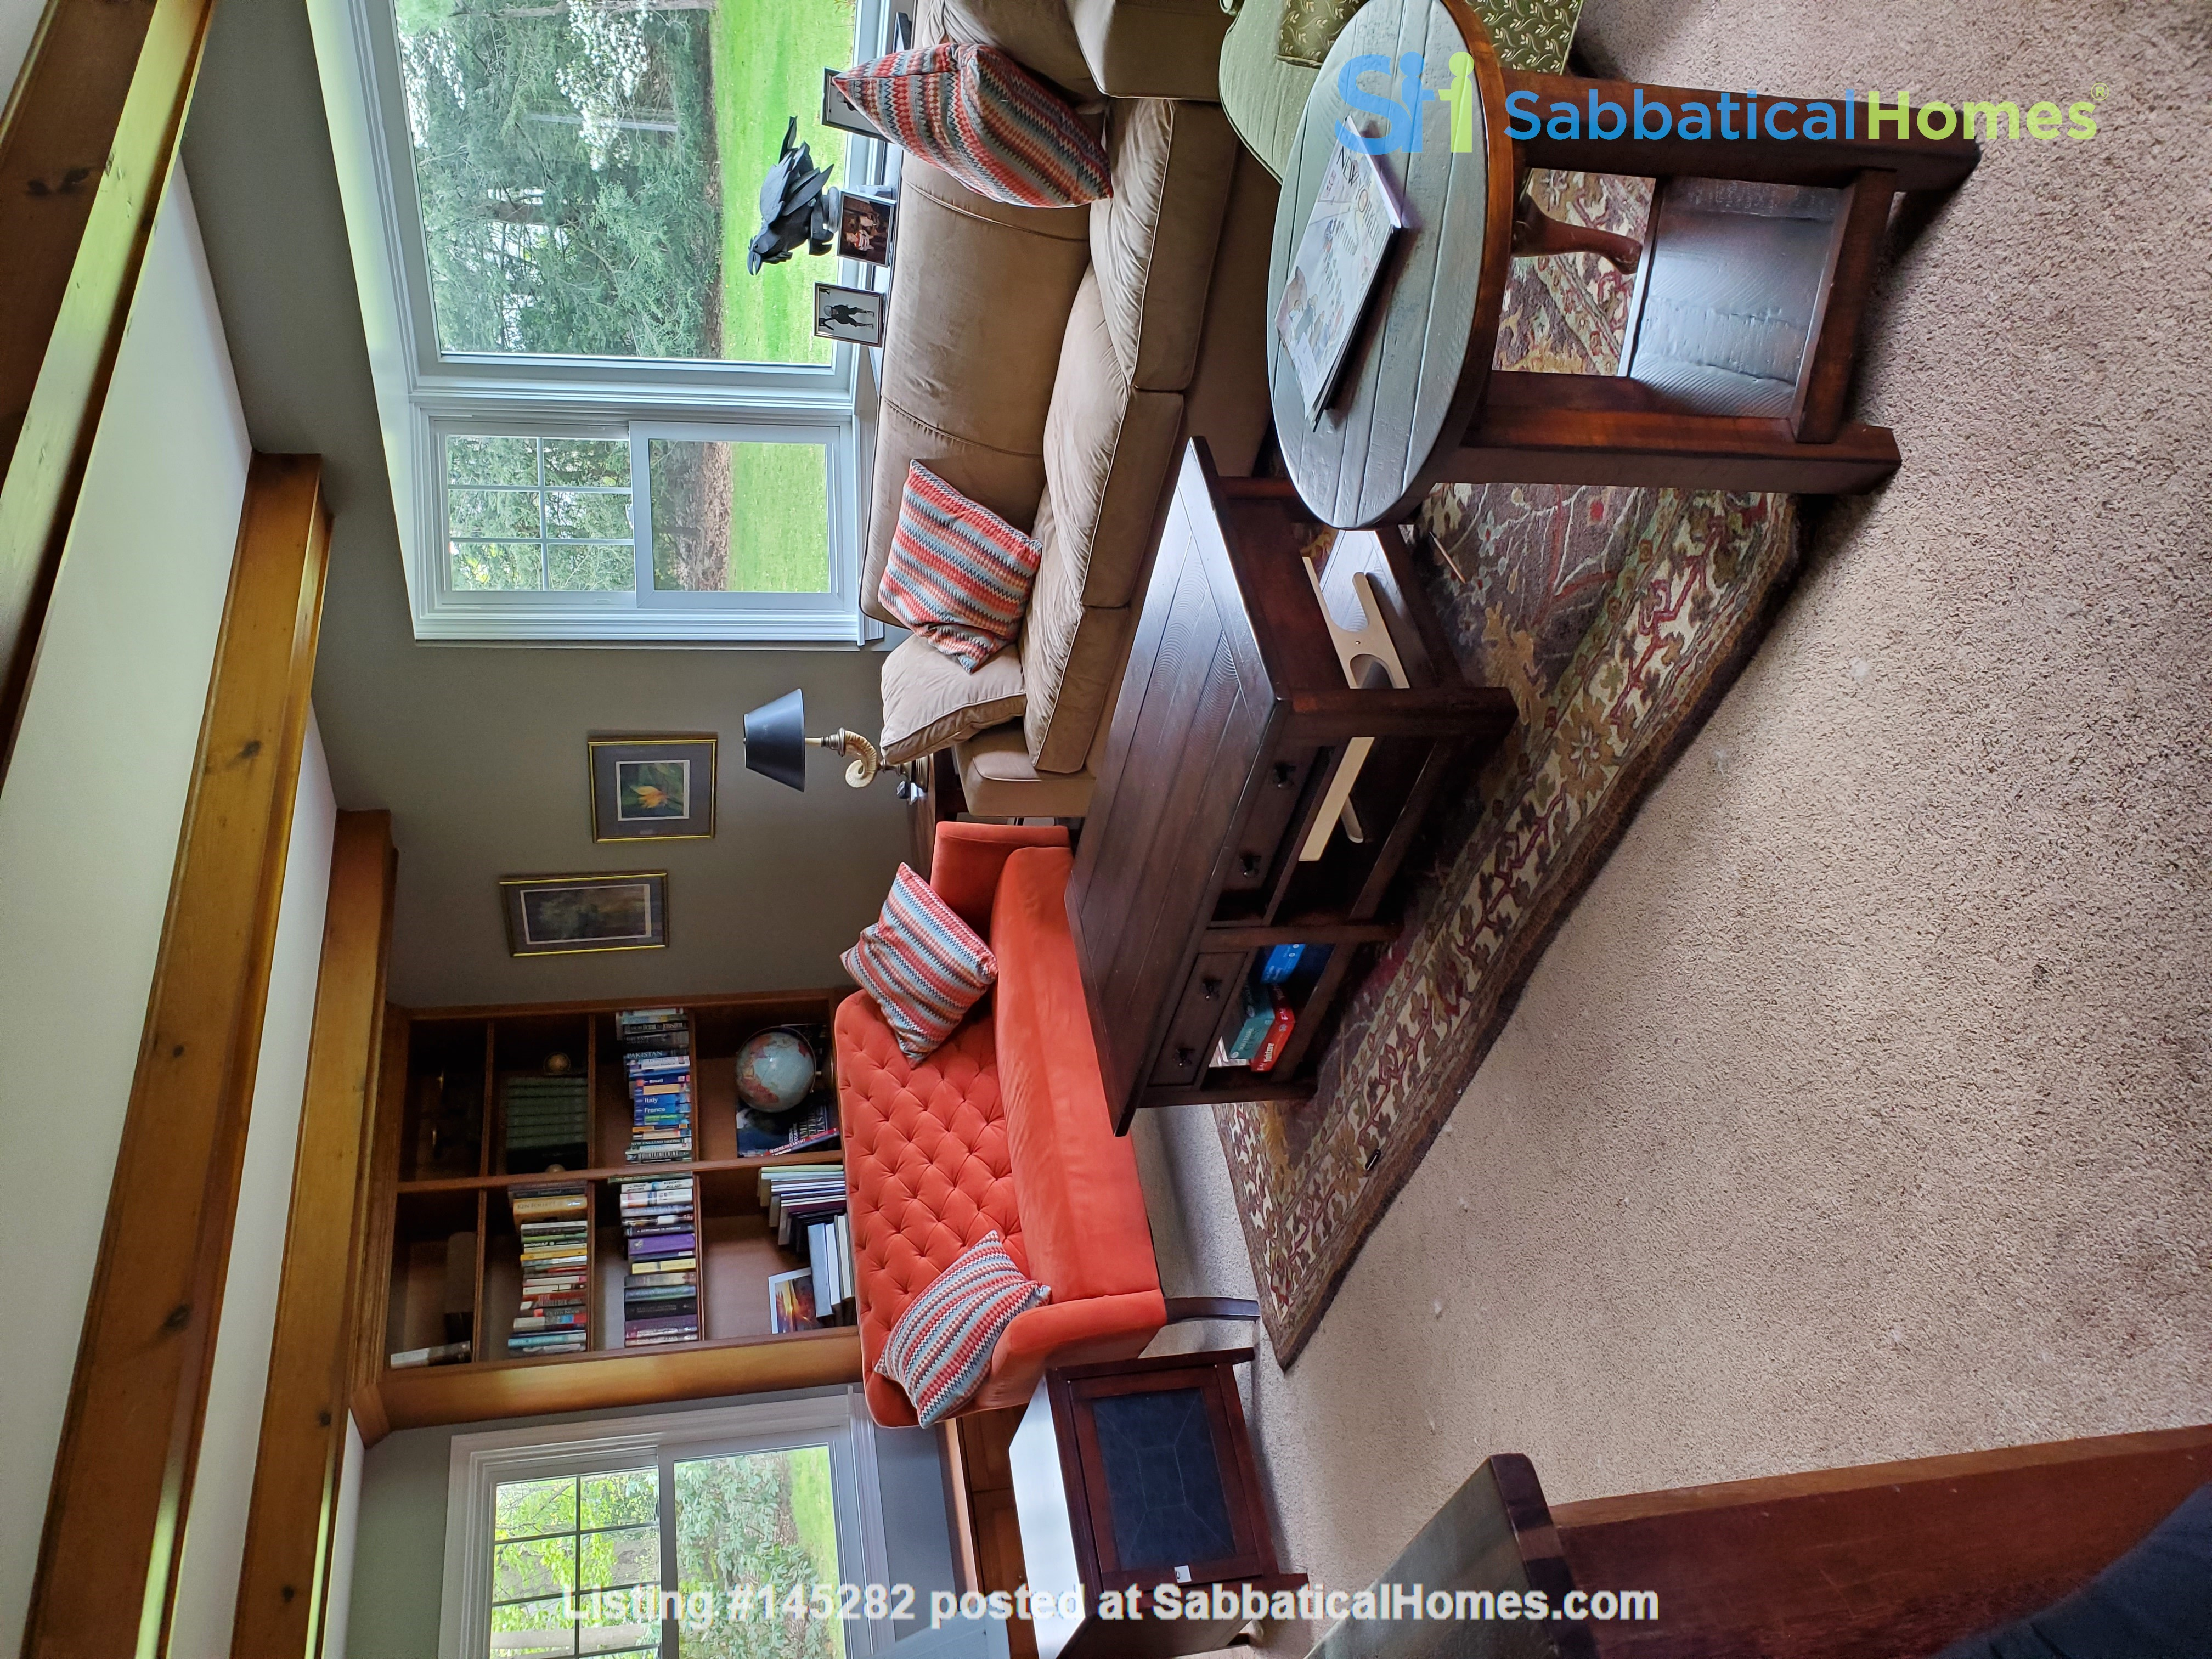 Spacious, Peaceful Getaway in Beautiful Amherst, MA, 4 BR 3.5 ba Home Rental in Amherst, Massachusetts, United States 9